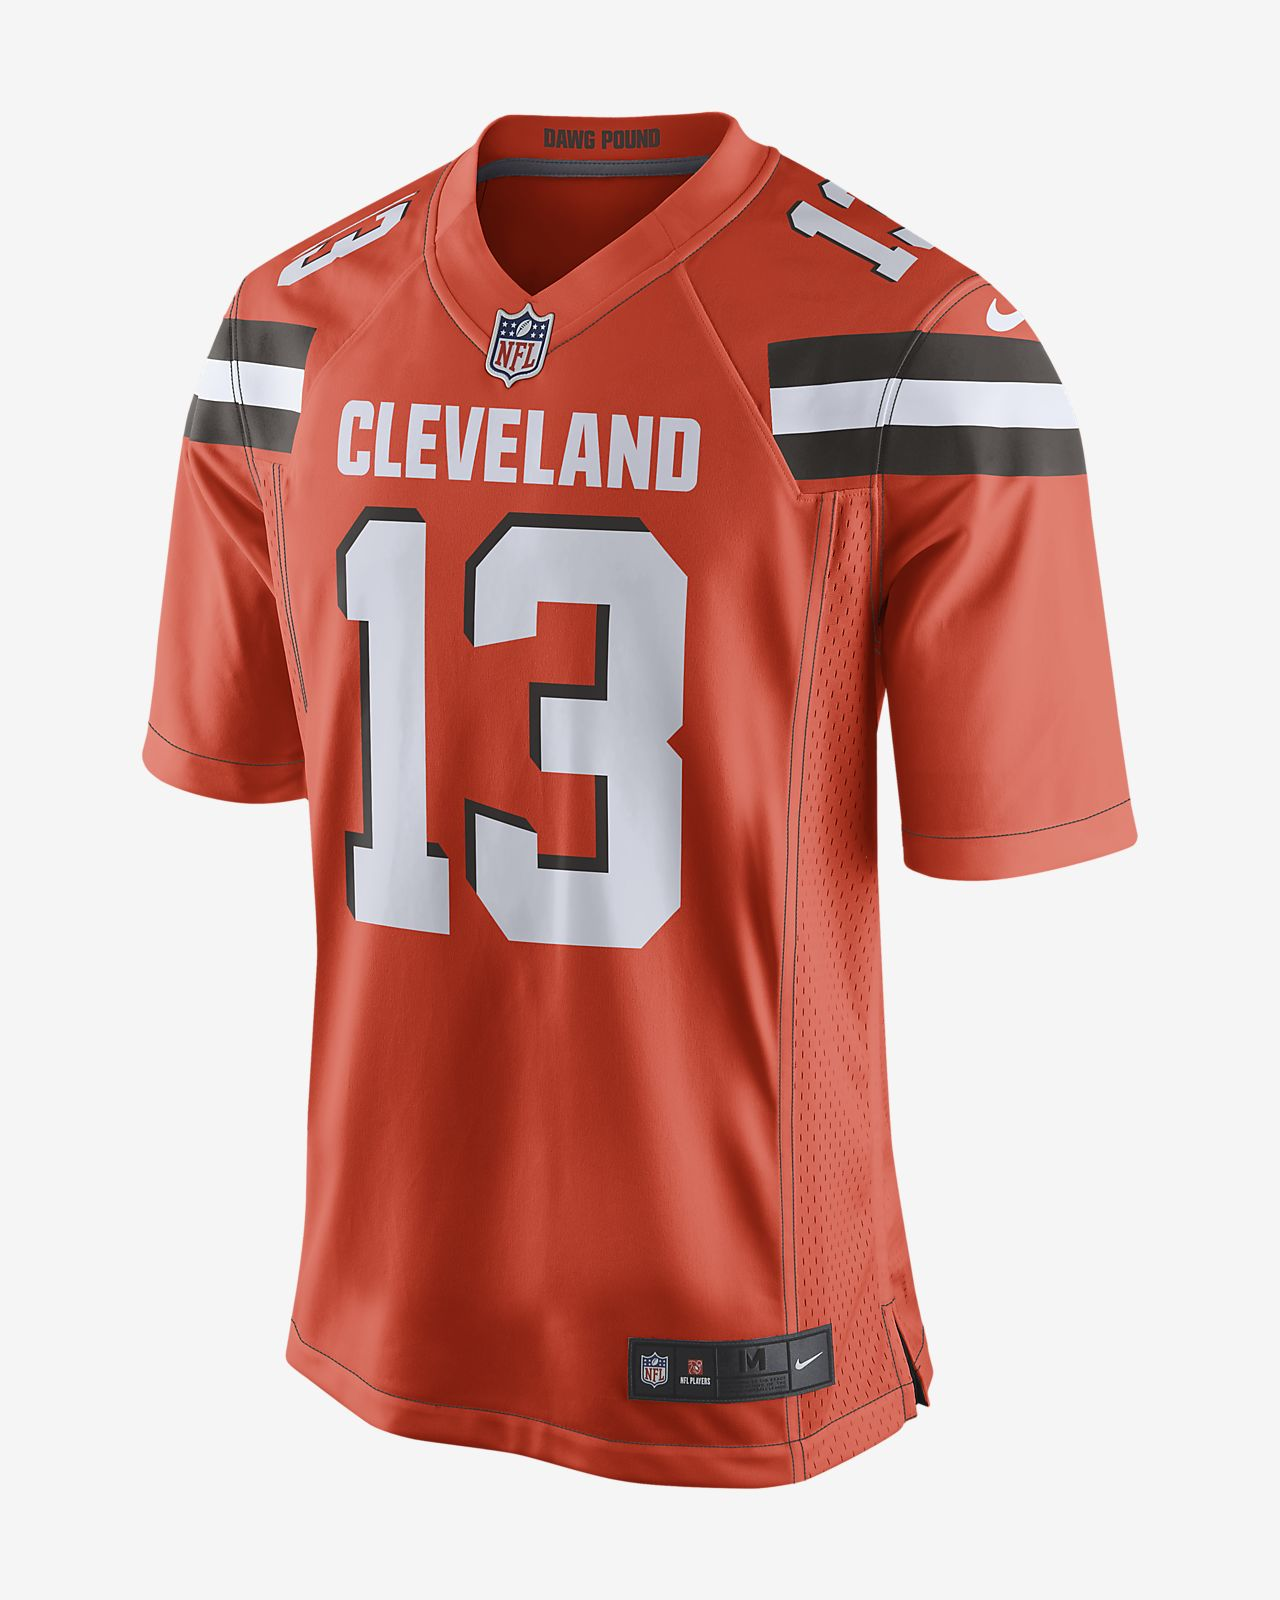 free shipping c5ab9 92fad NFL Cleveland Browns (Odell Beckham Jr.) Men's Game Football Jersey